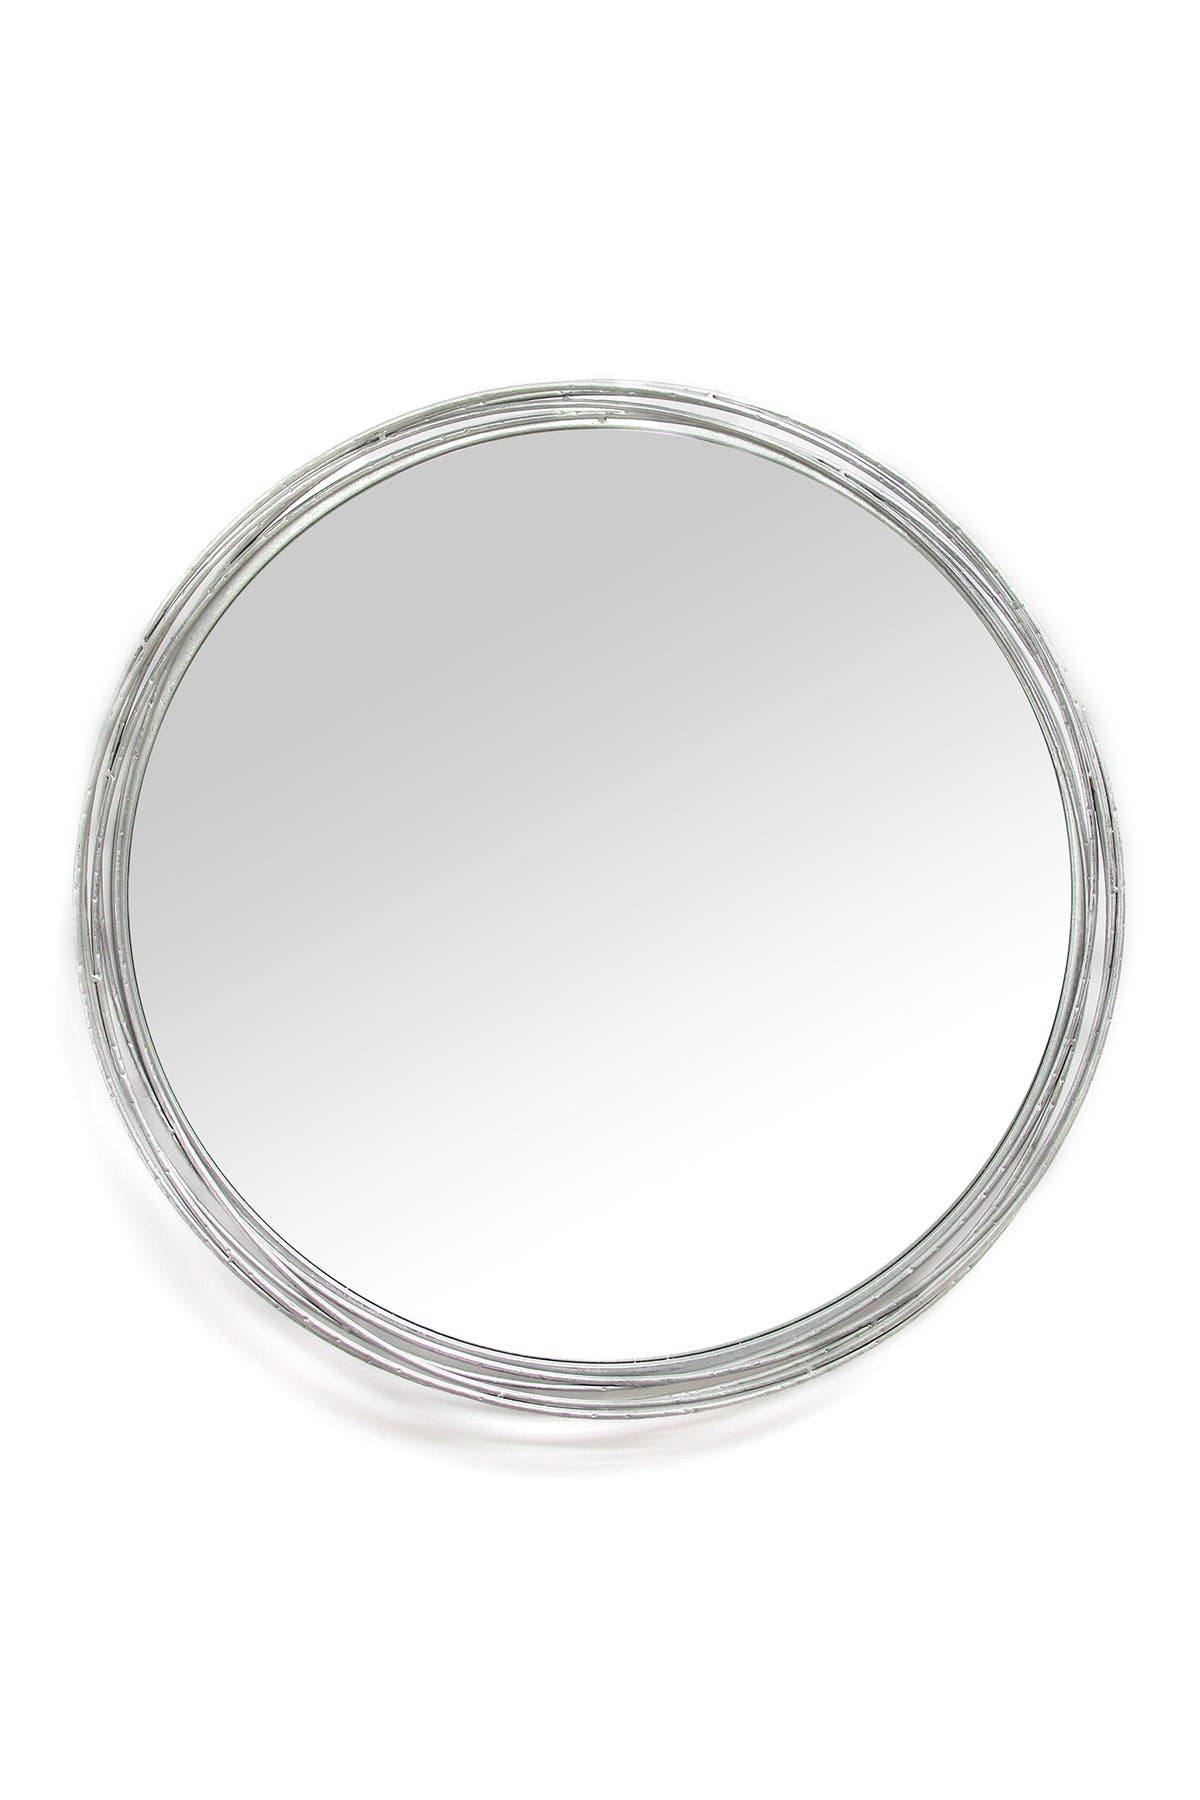 Image of Stratton Home Silver Jocelyn Wall Mirror